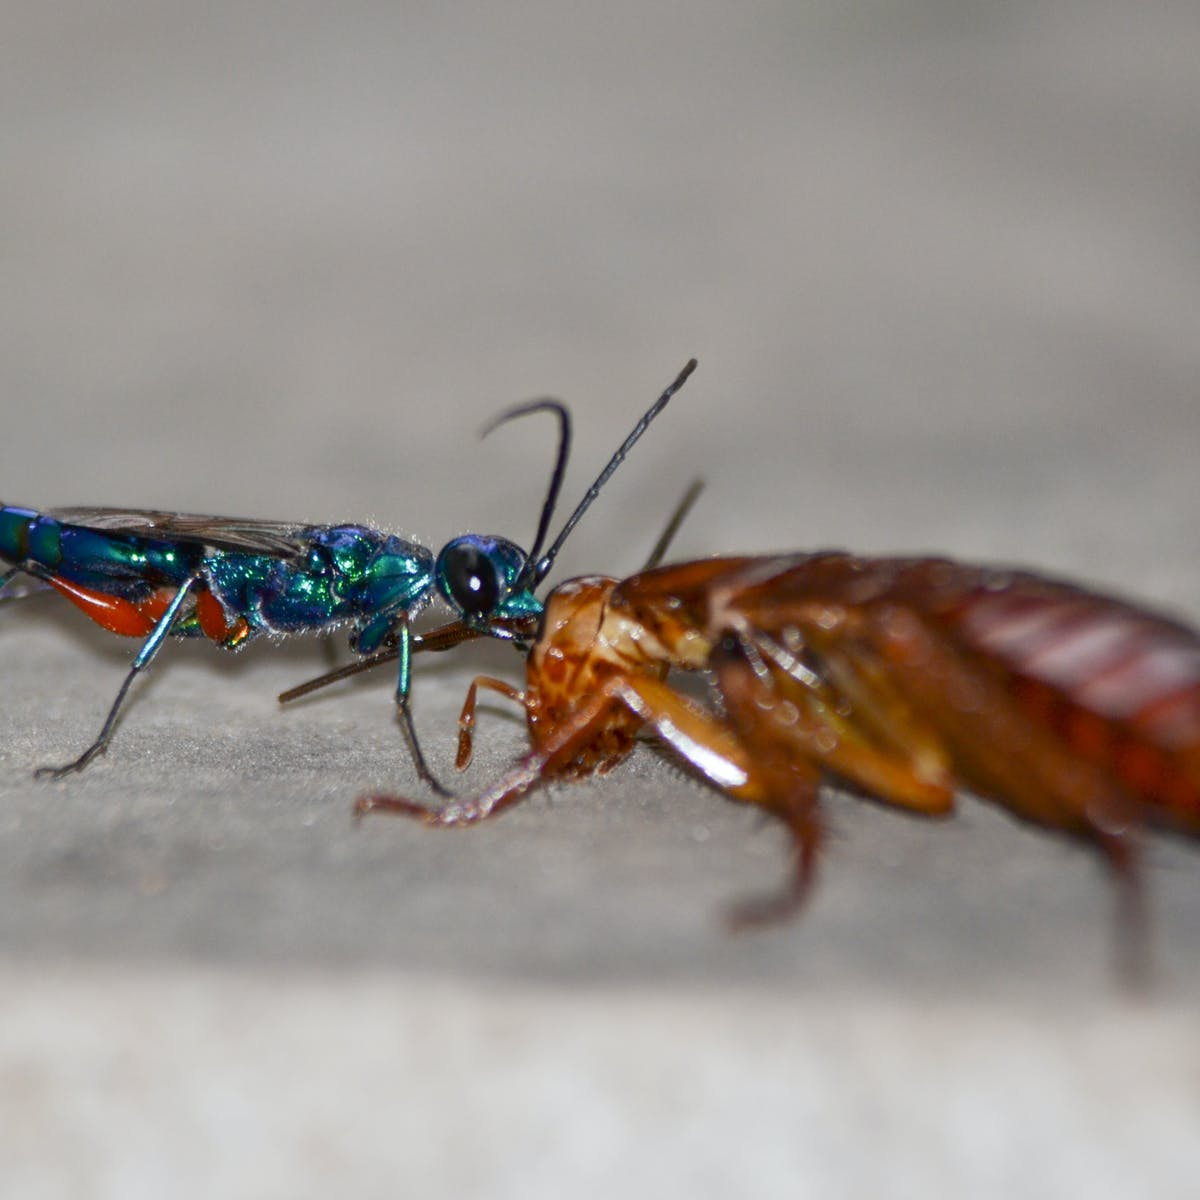 Parasitic wasp turns roaches into zombie slaves using